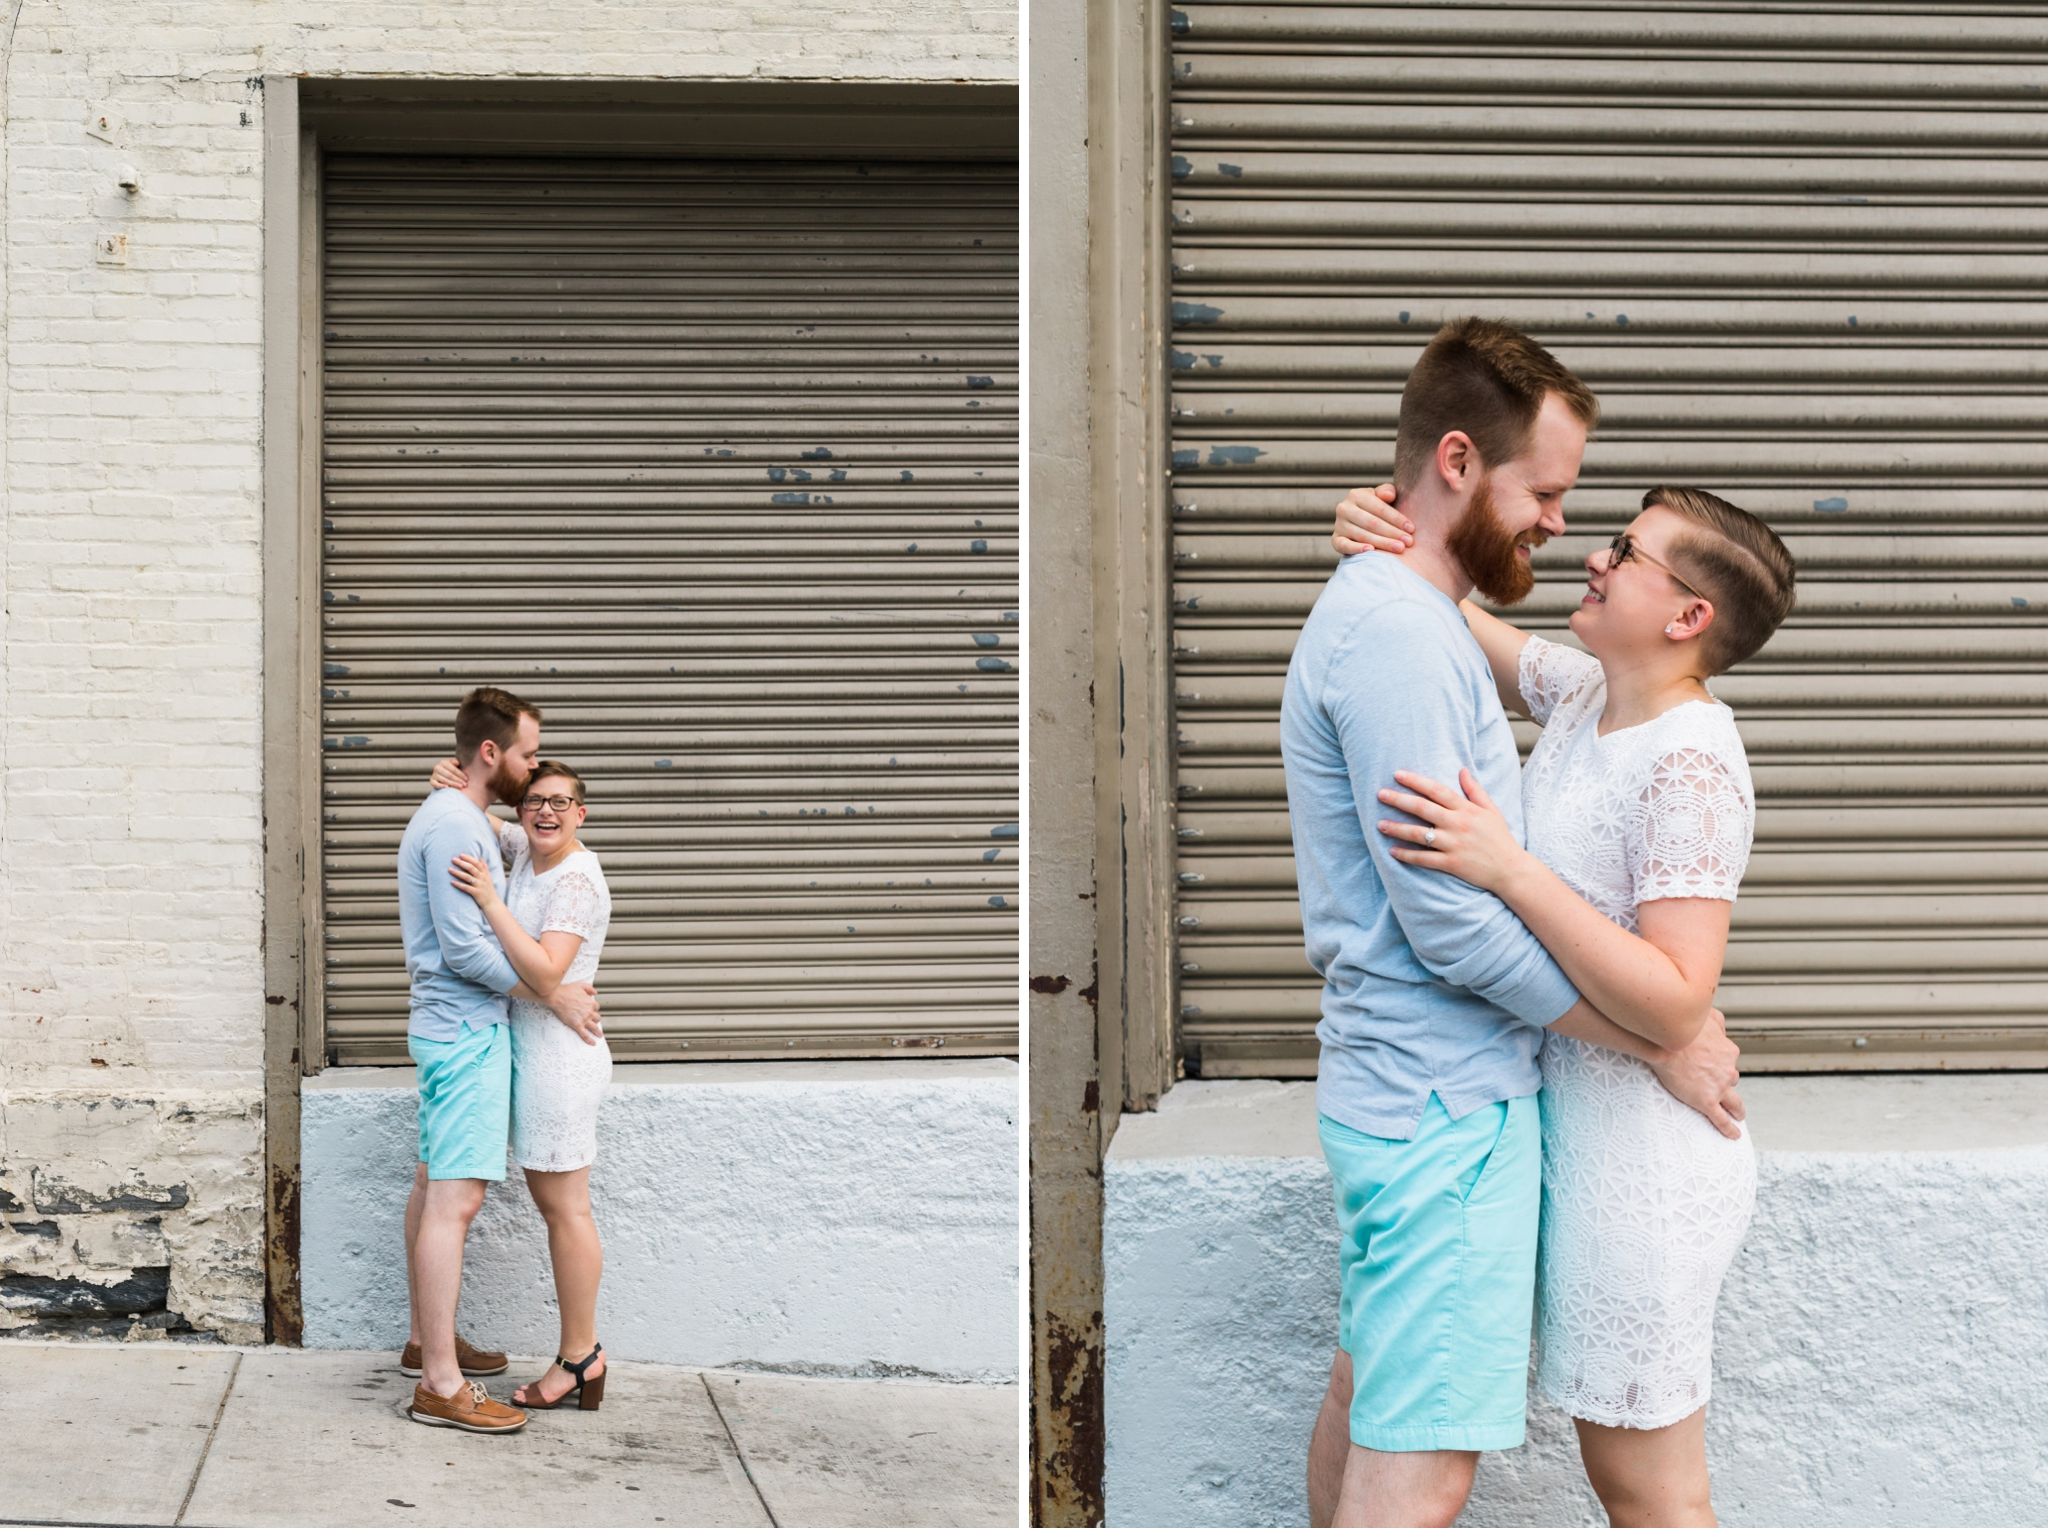 Emily Grace Photo, The Booking House Wedding, Manheim Wedding Venue, Lancaster PA Wedding Photographer, Downtown Lancaster City Engagement Session, Lancaster Central Market Engagement Session